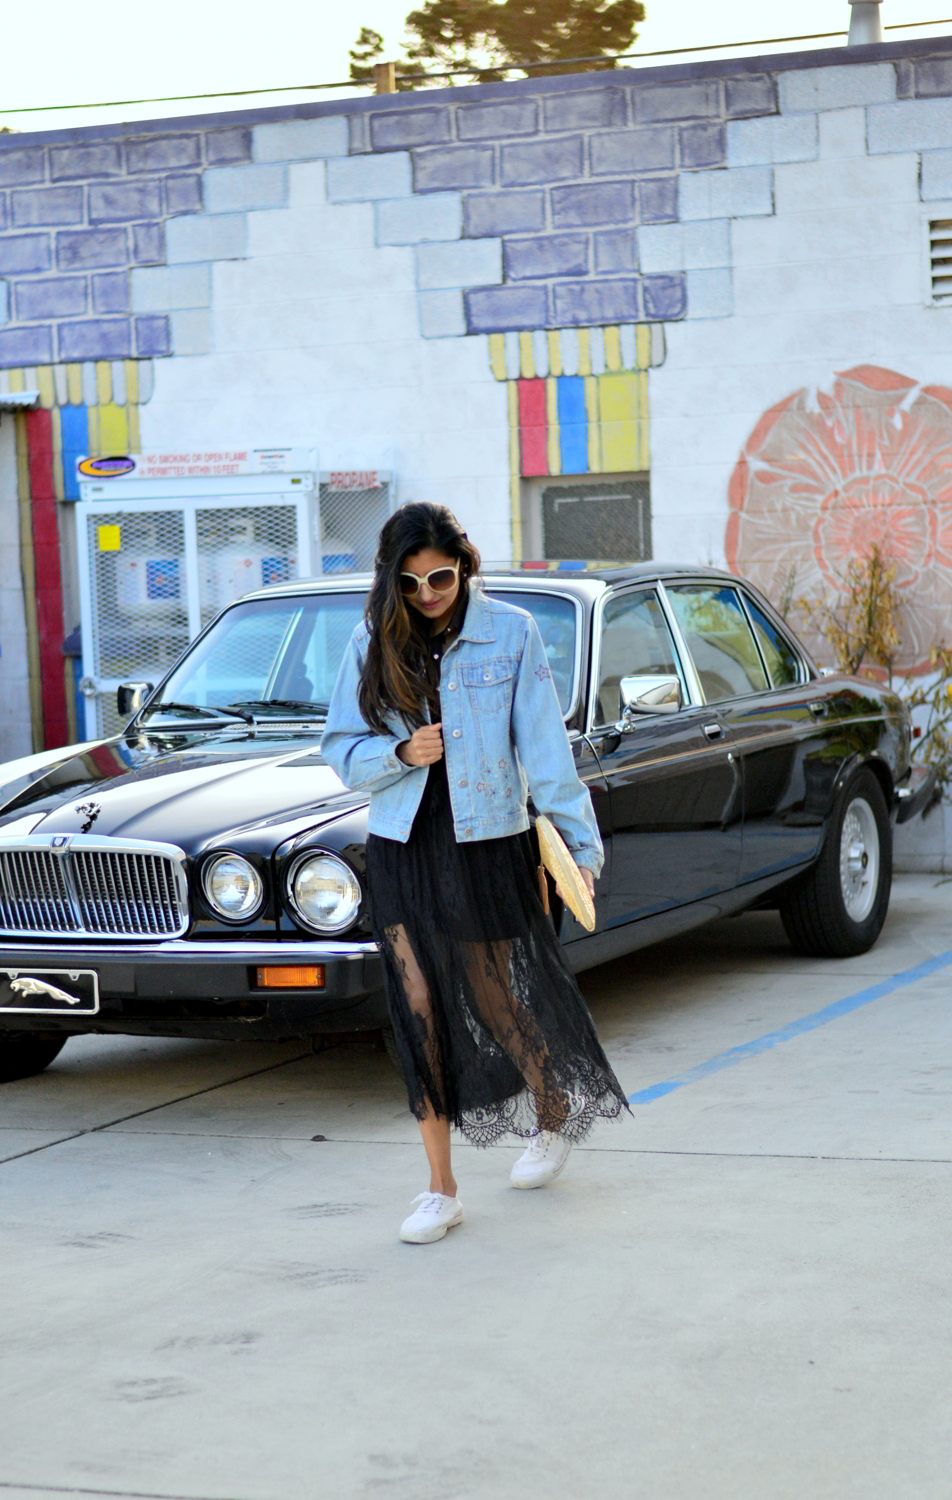 lace-black-maxi-dress-monterey-california-beach-outfit-blogger-style-travel-denim-jacket 3